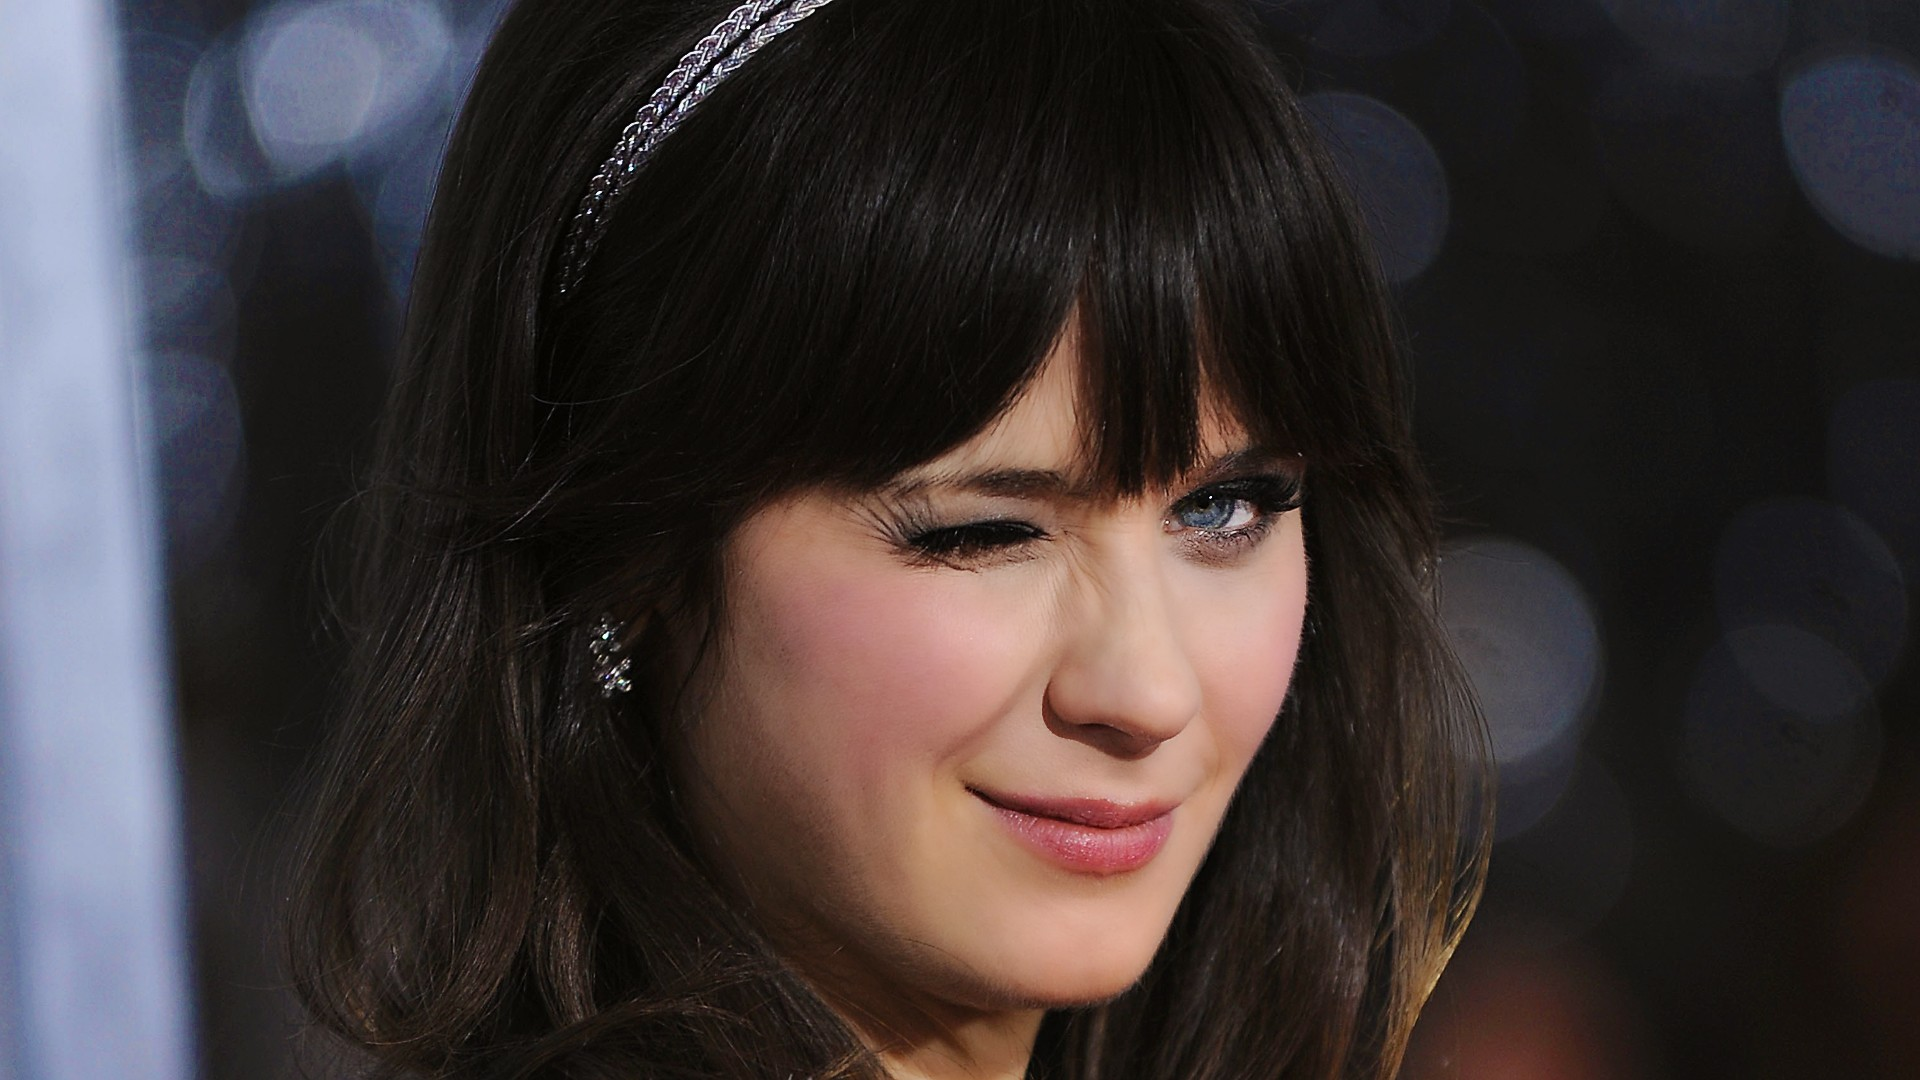 zooey deschanel widescreen desktop wallpaper 958